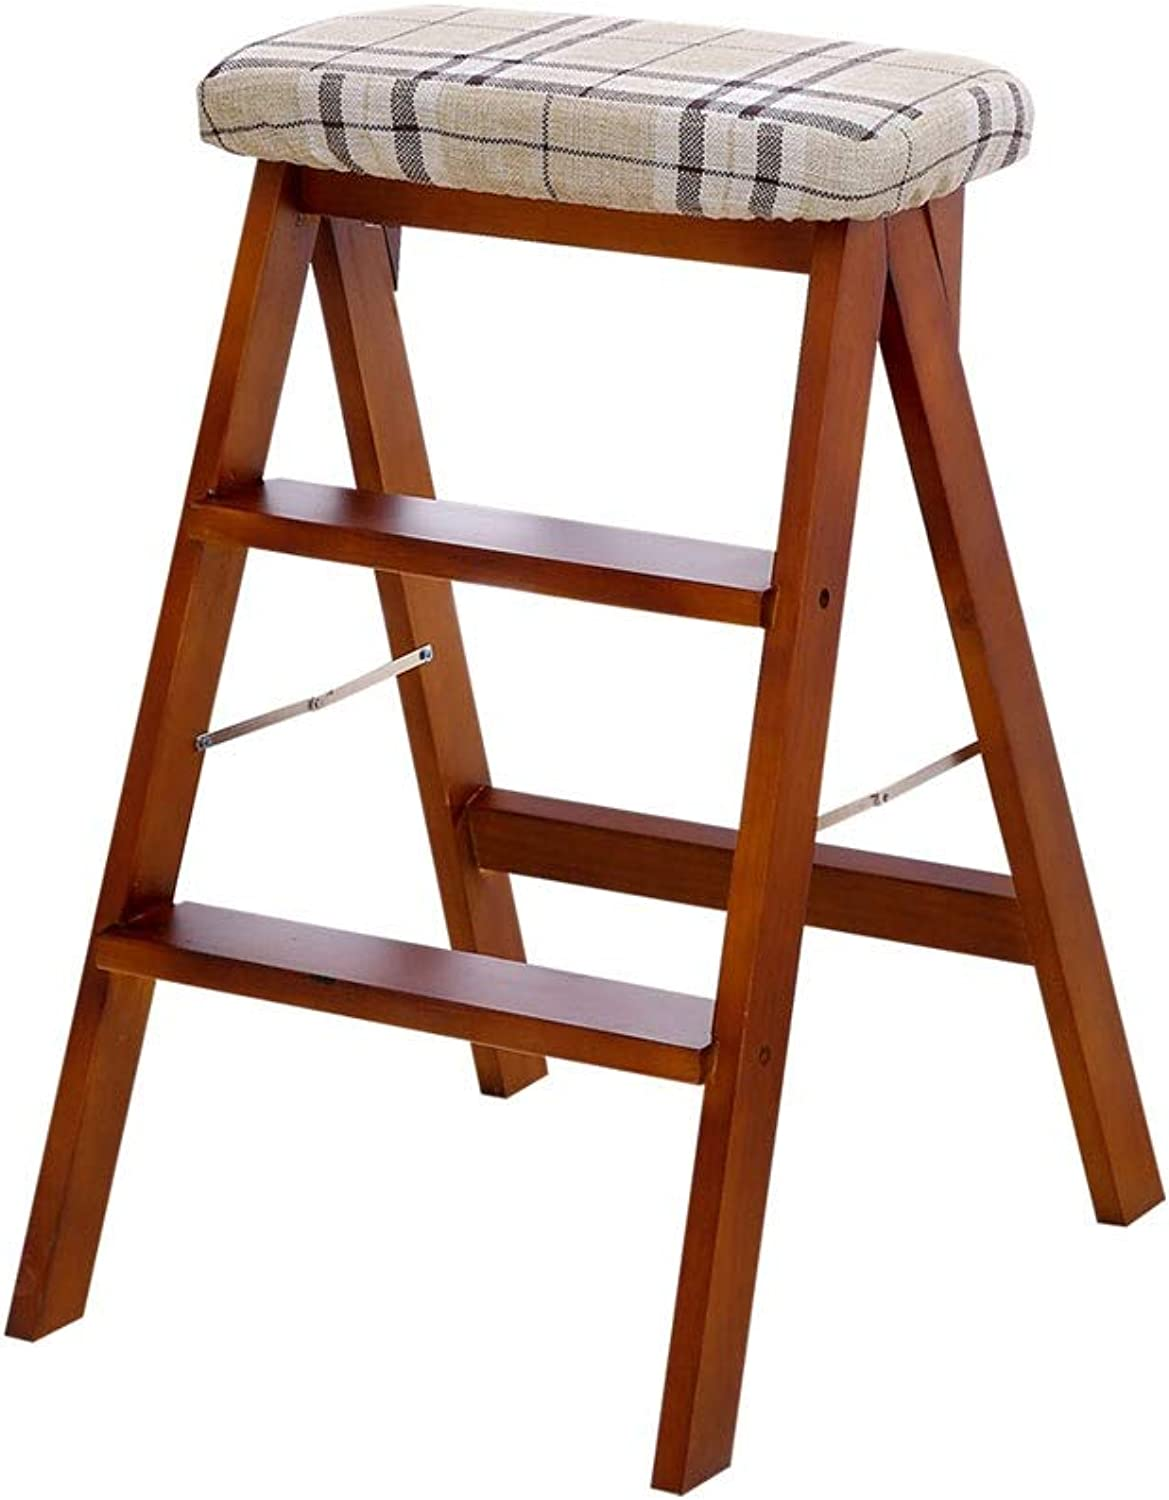 A+ Fabric Home Ladder Stool, Vintage Solid Wood Folding Chair, Simple Portable Four-Foot Stool, High Elastic Sponge Filling, Foldable, Easy to Store (color   Long Clause)